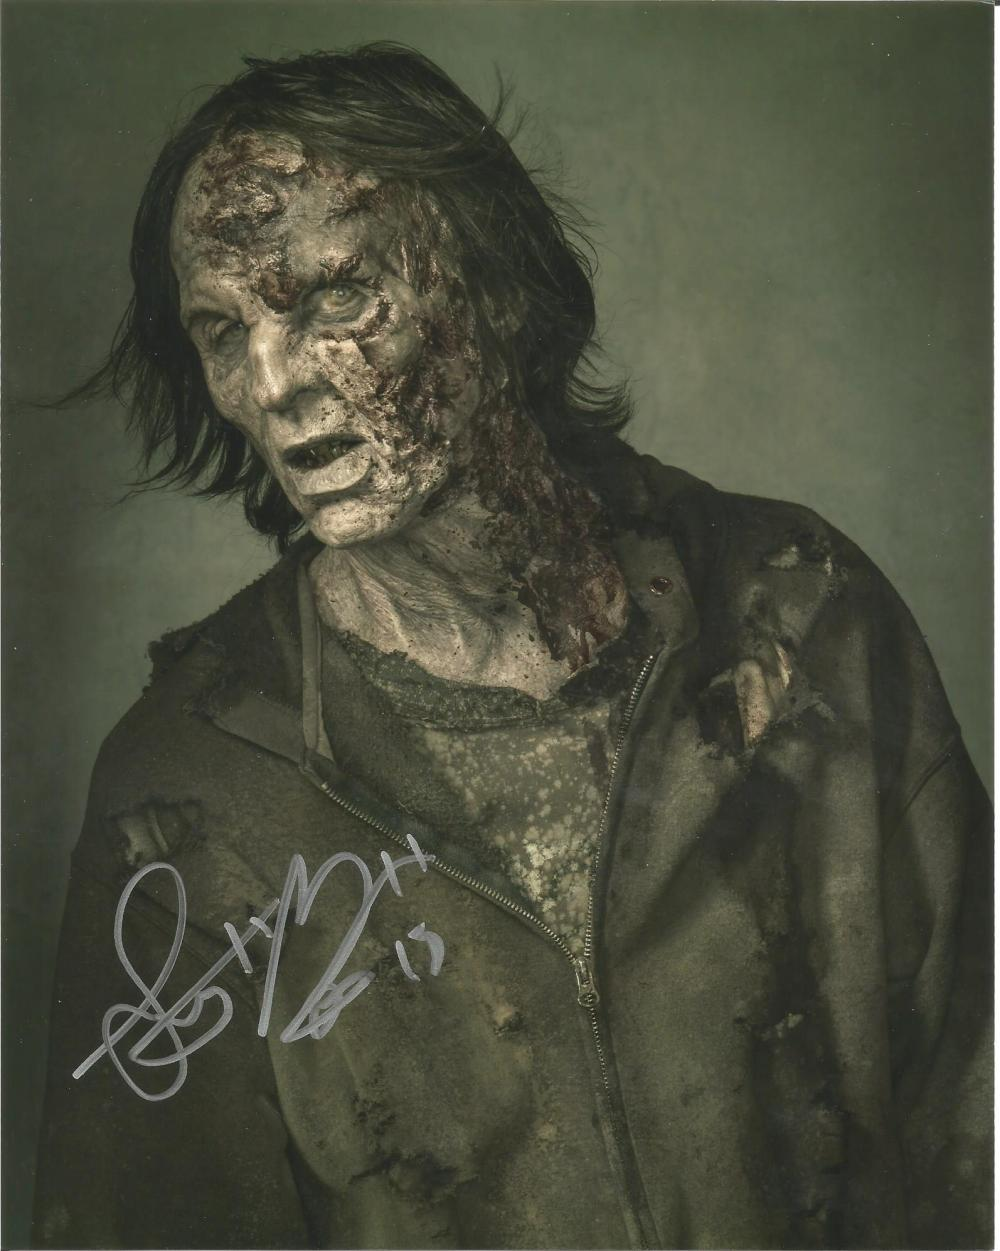 Lot of 5 Walking Dead hand signed 10x8 photos. This beautiful set of 5 hand-signed photos